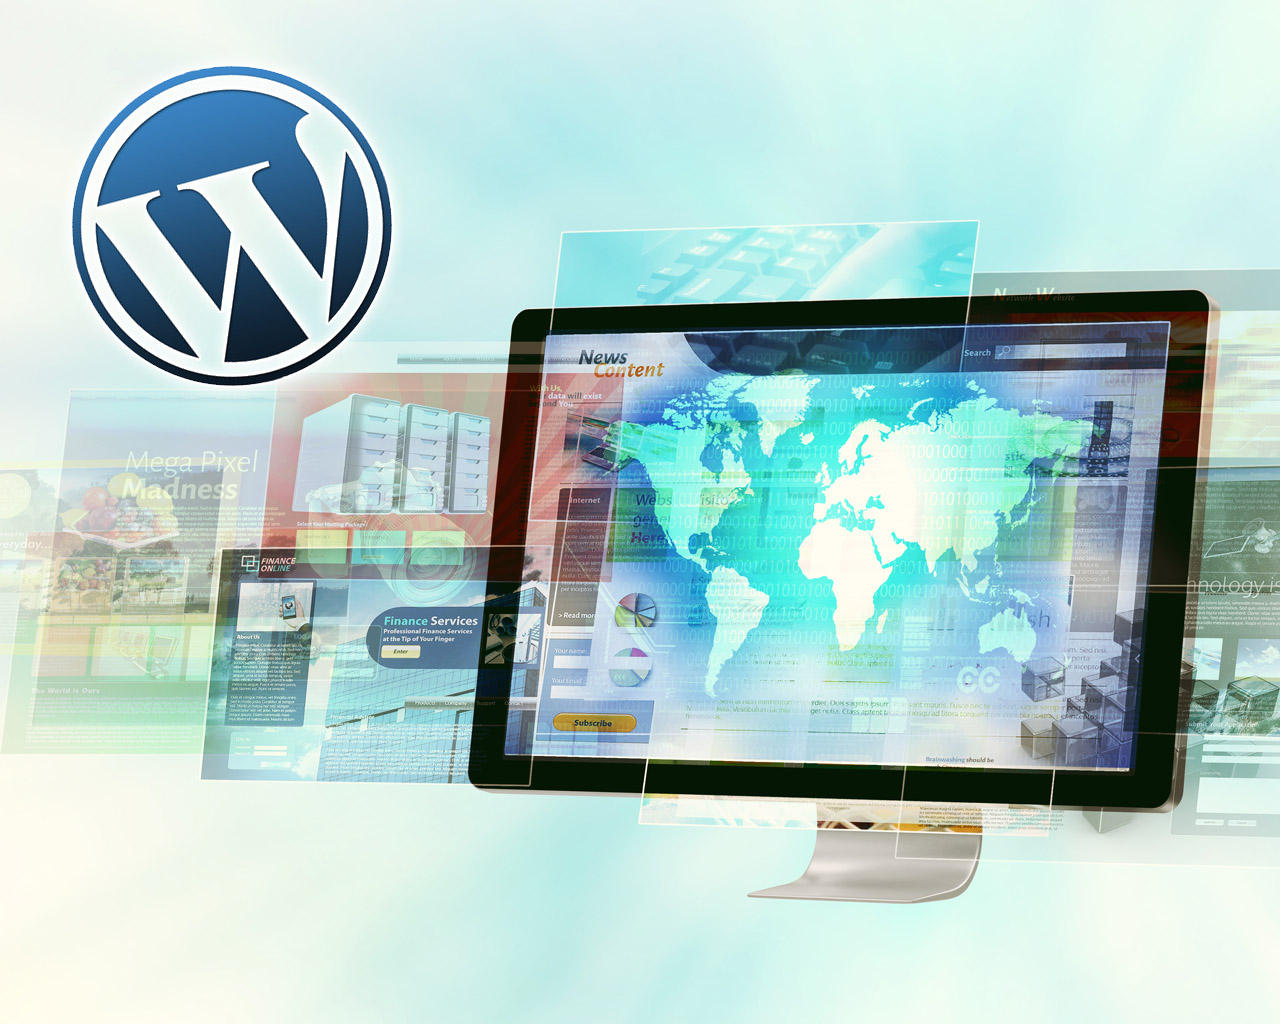 Install WordPress Theme with Demo Content & Plugins Setup  by Dimitris73 - 73507